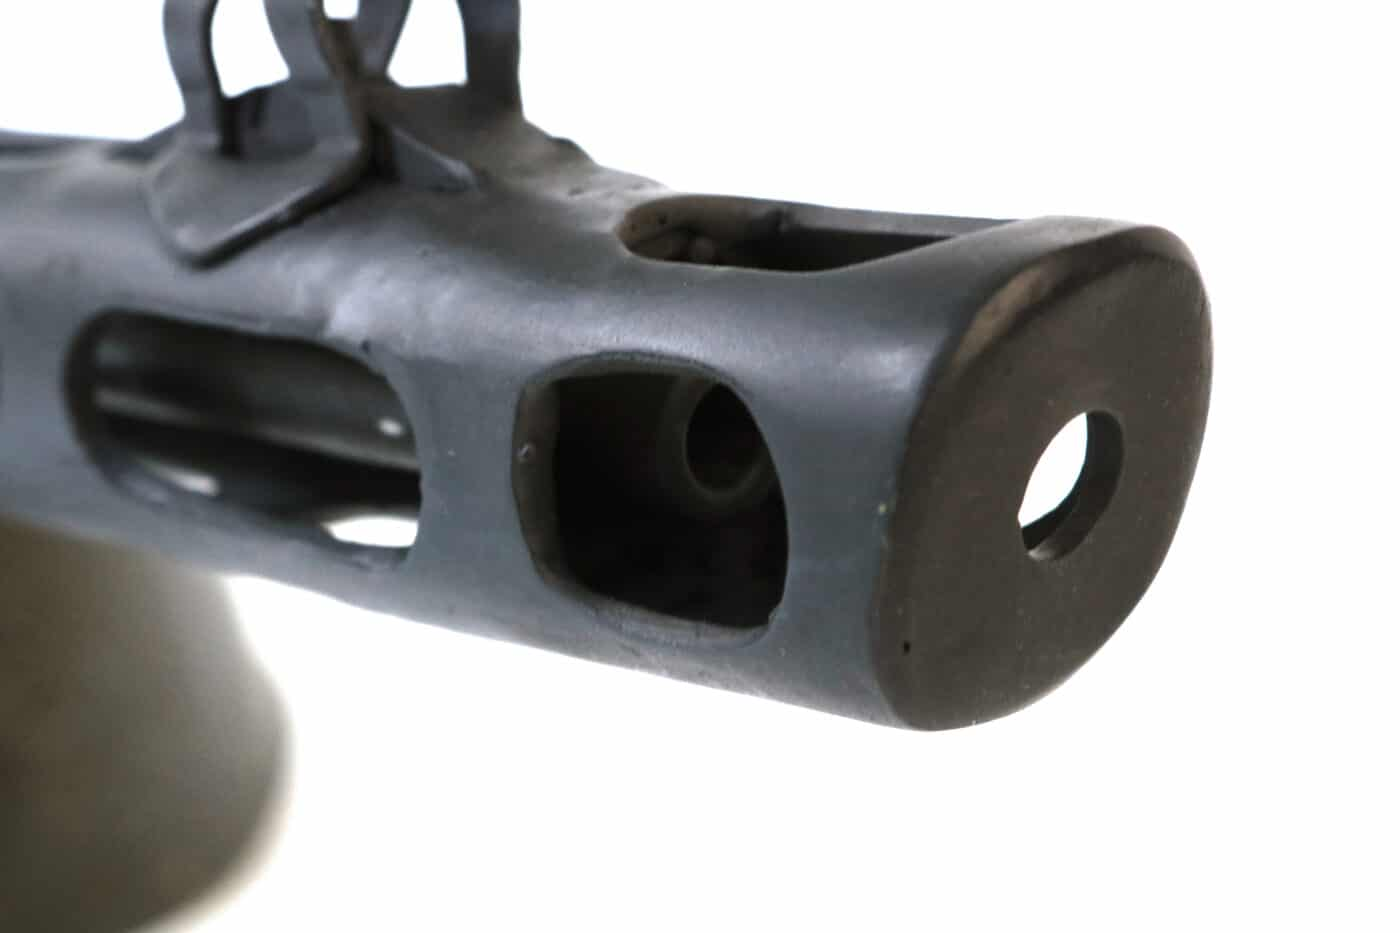 Muzzle brake on the Russian PPSh SMG